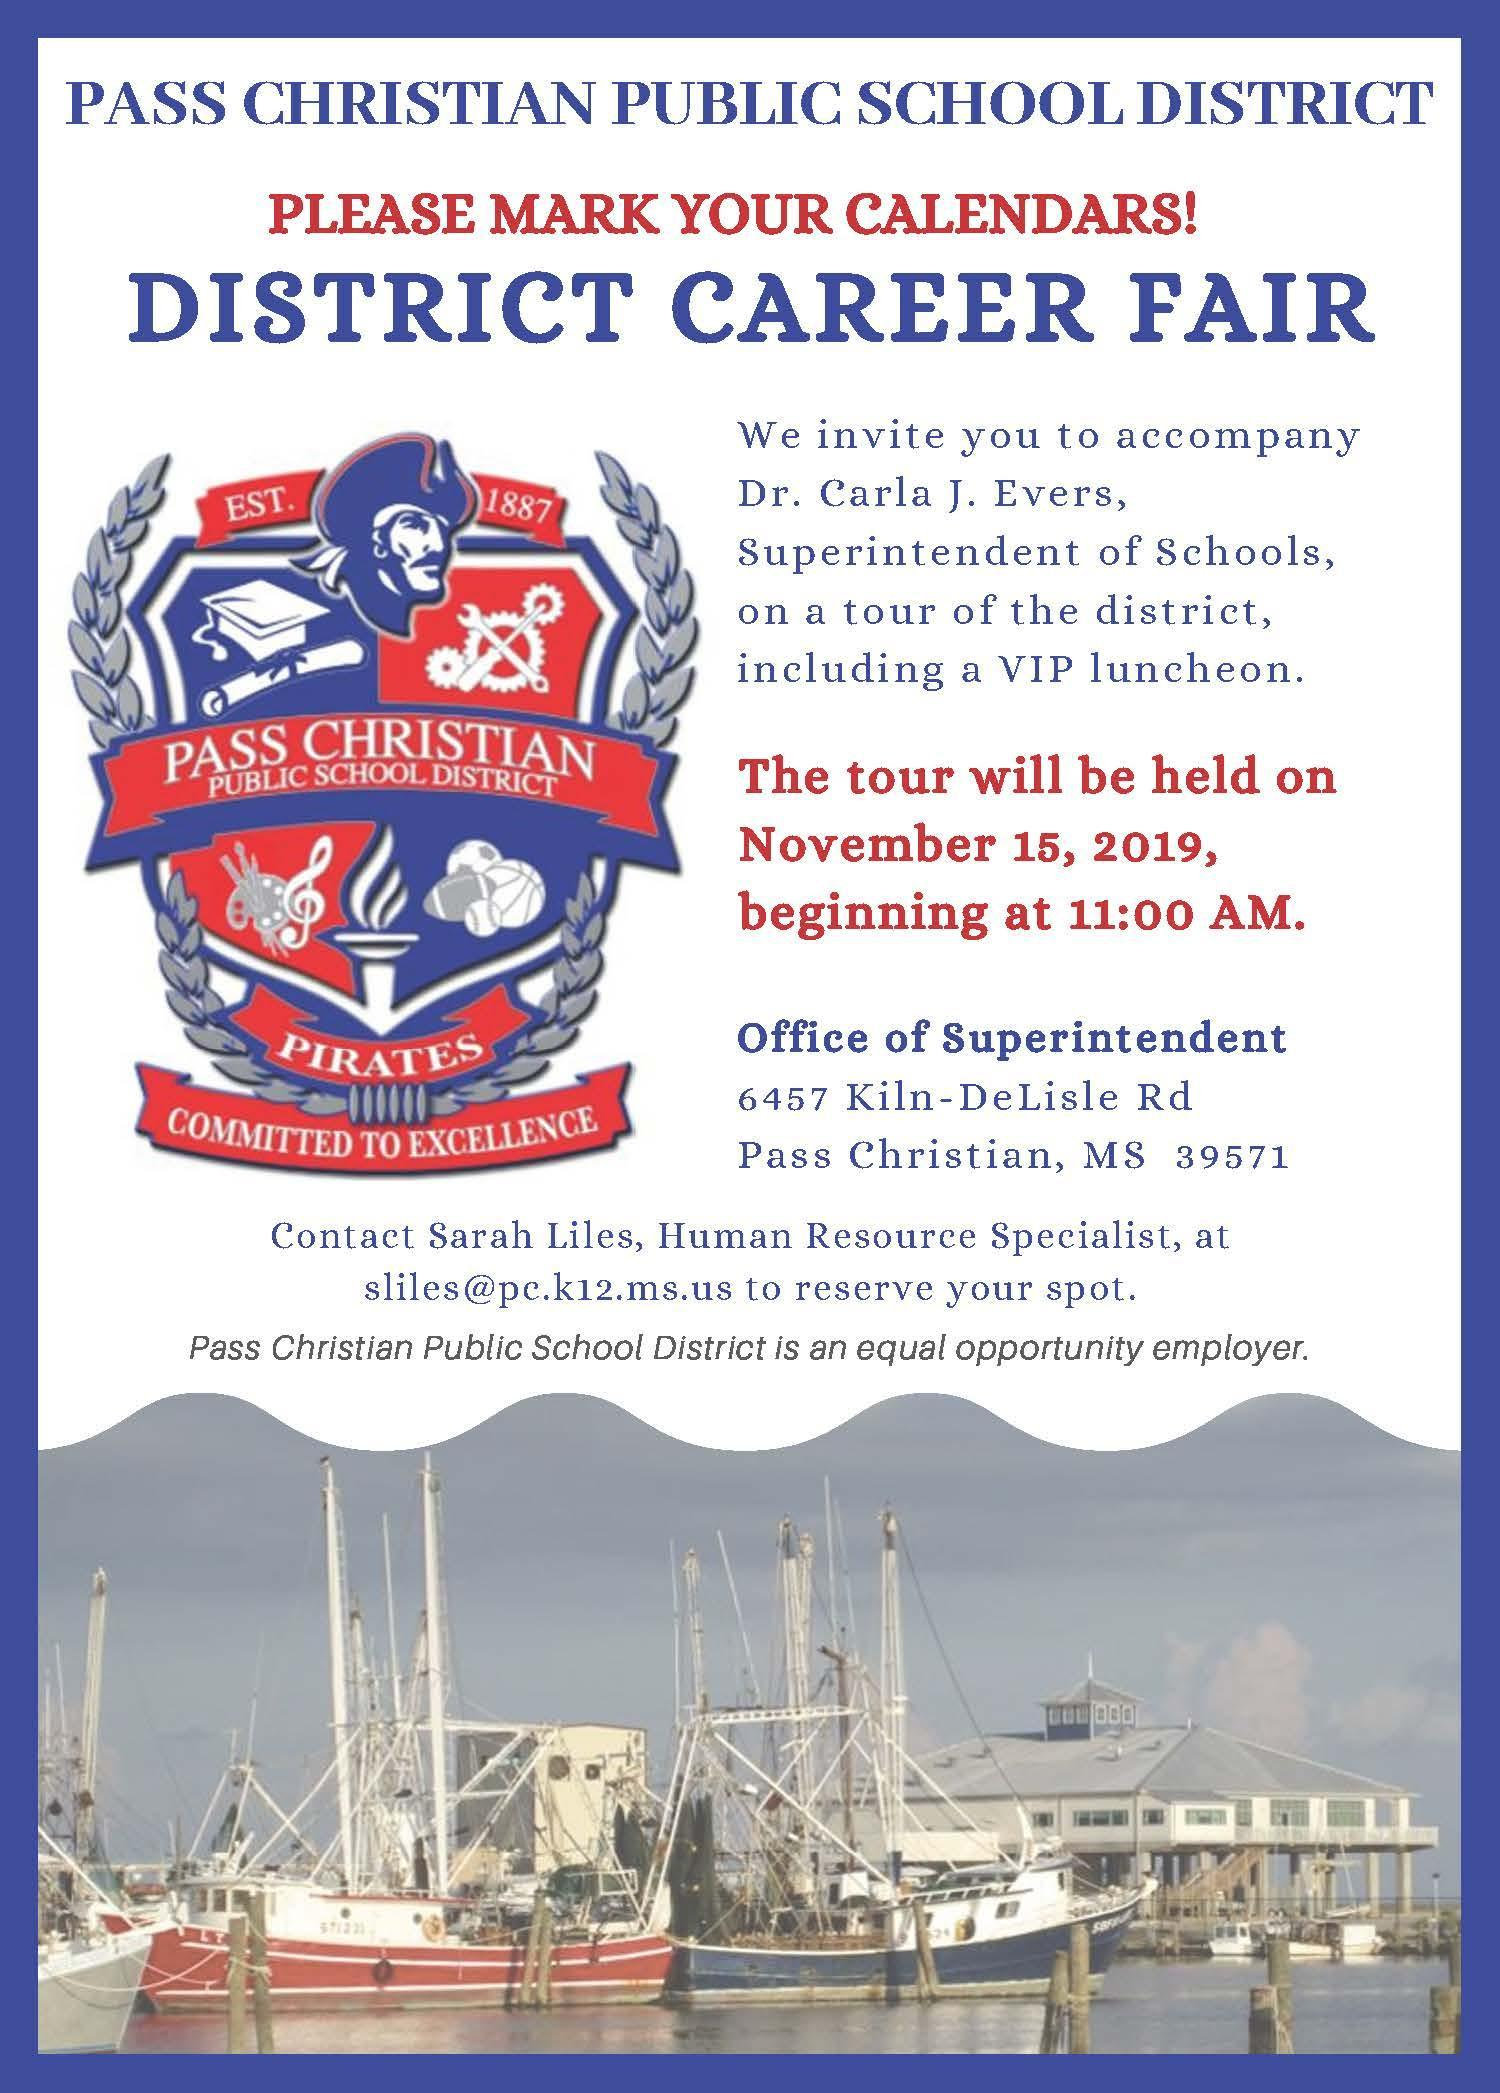 Invitation to district career fair on 11/15/2019 beginning at 11:00 am.